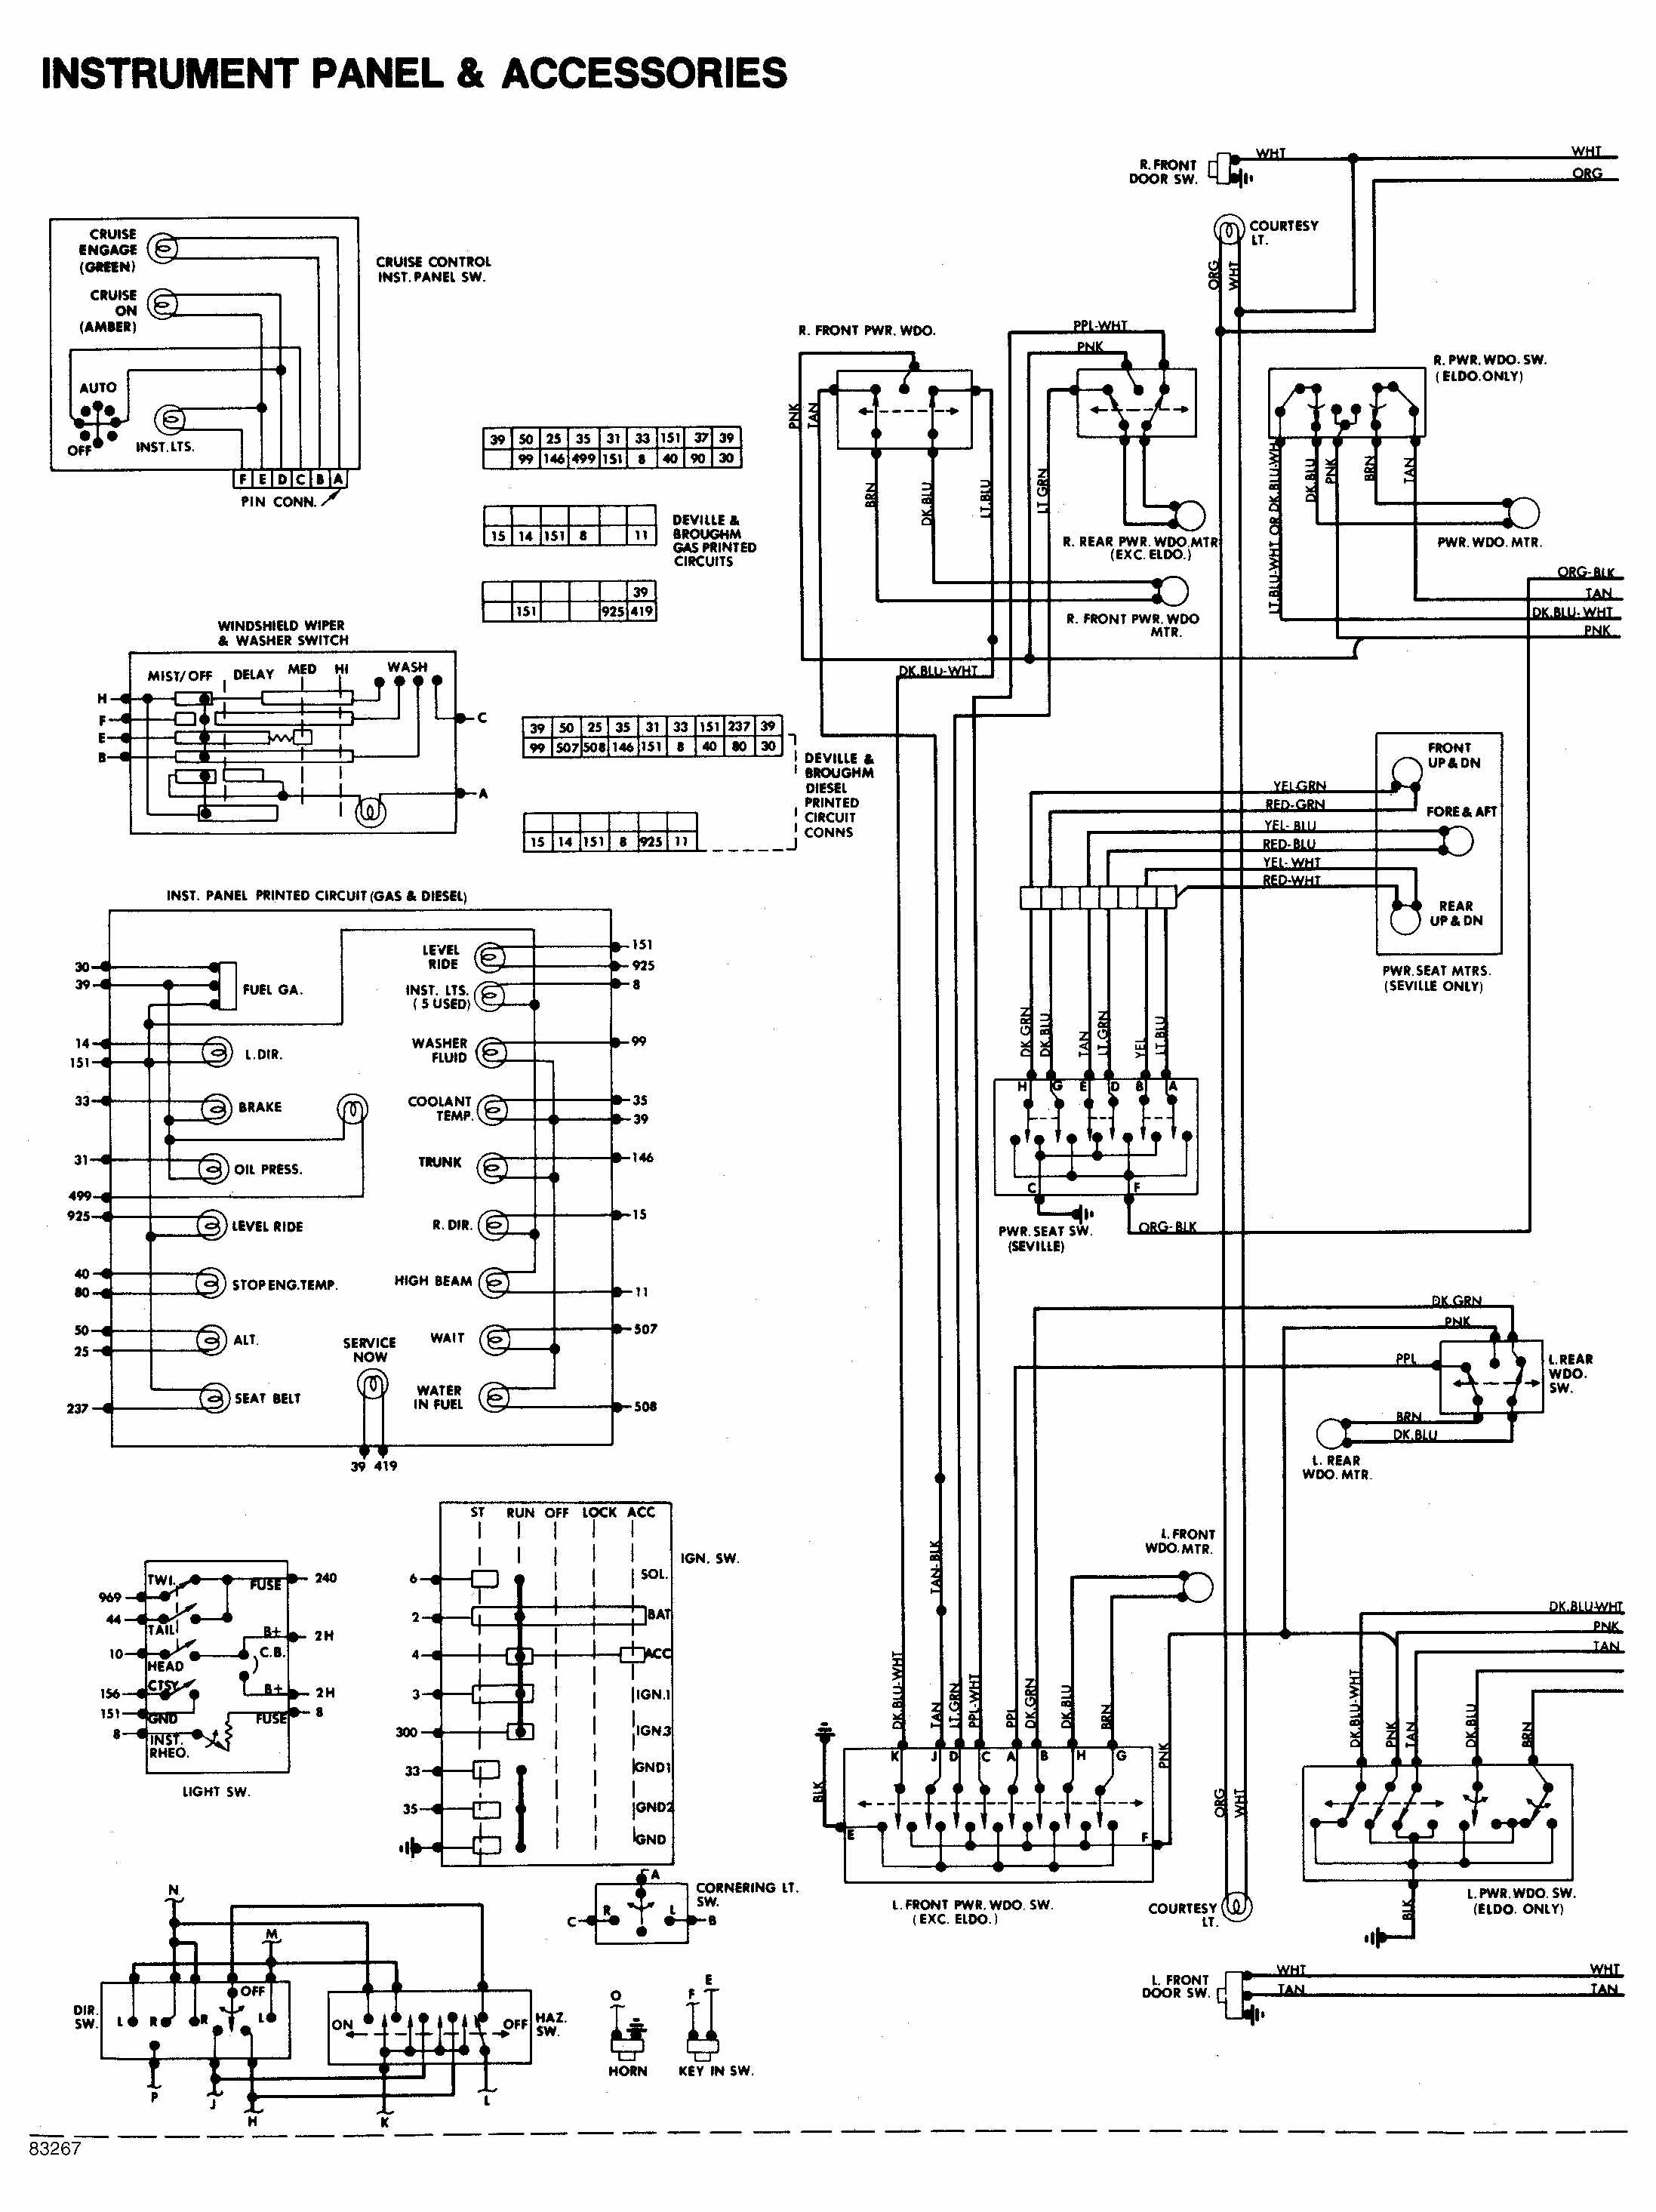 instrument panel and accessories wiring diagram of 1984 cadillac deville gm wiring diagrams gm wiring diagrams online \u2022 wiring diagrams j Duramax LB7 Fuel System Diagram at alyssarenee.co